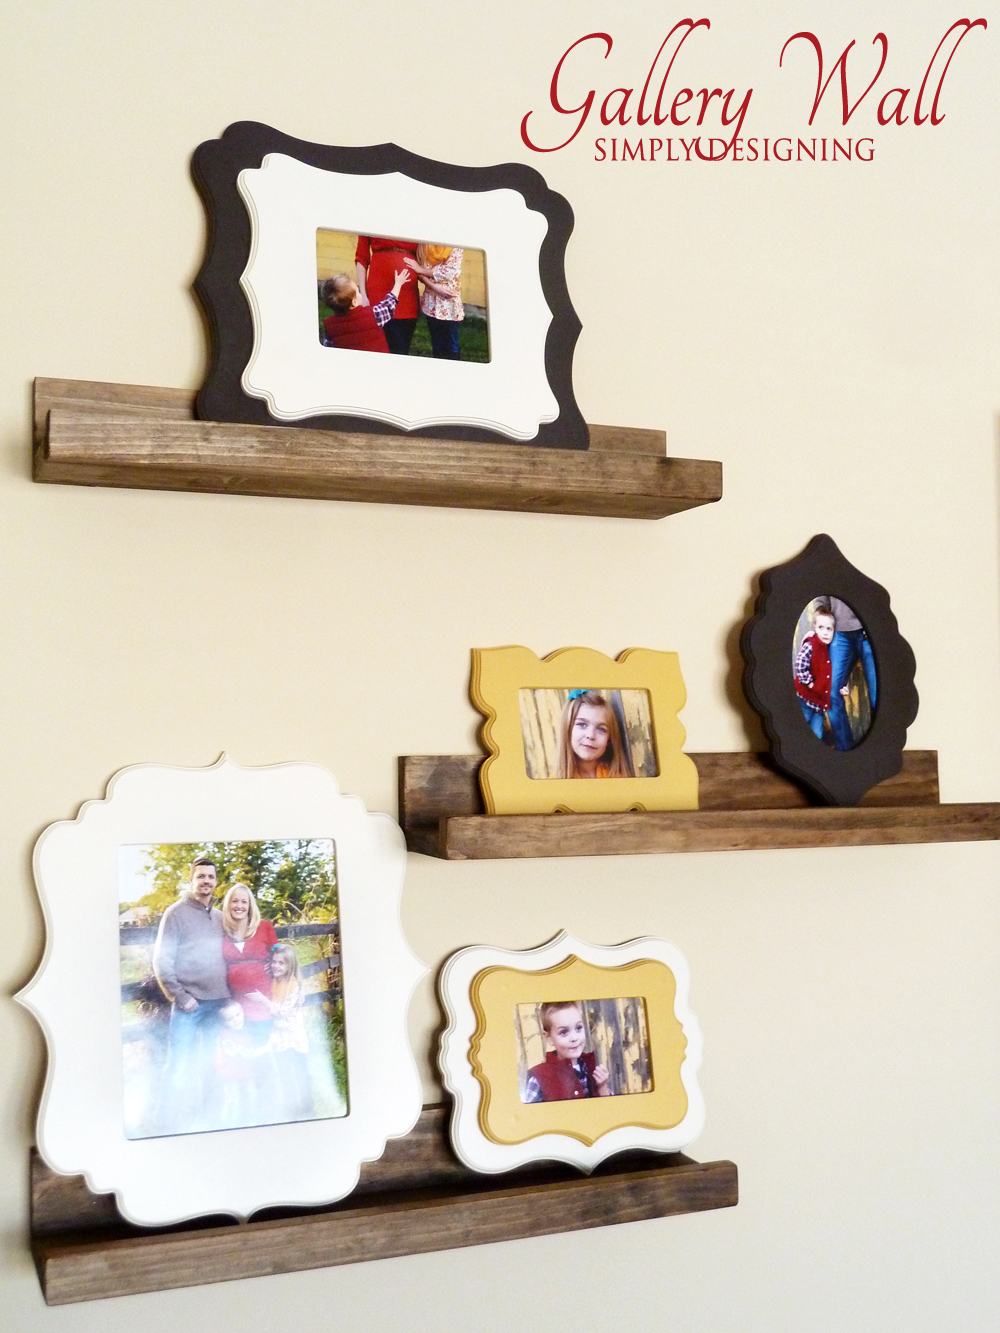 Chic Frames for Gallery Wall | #homedecor #frames #gallerywall